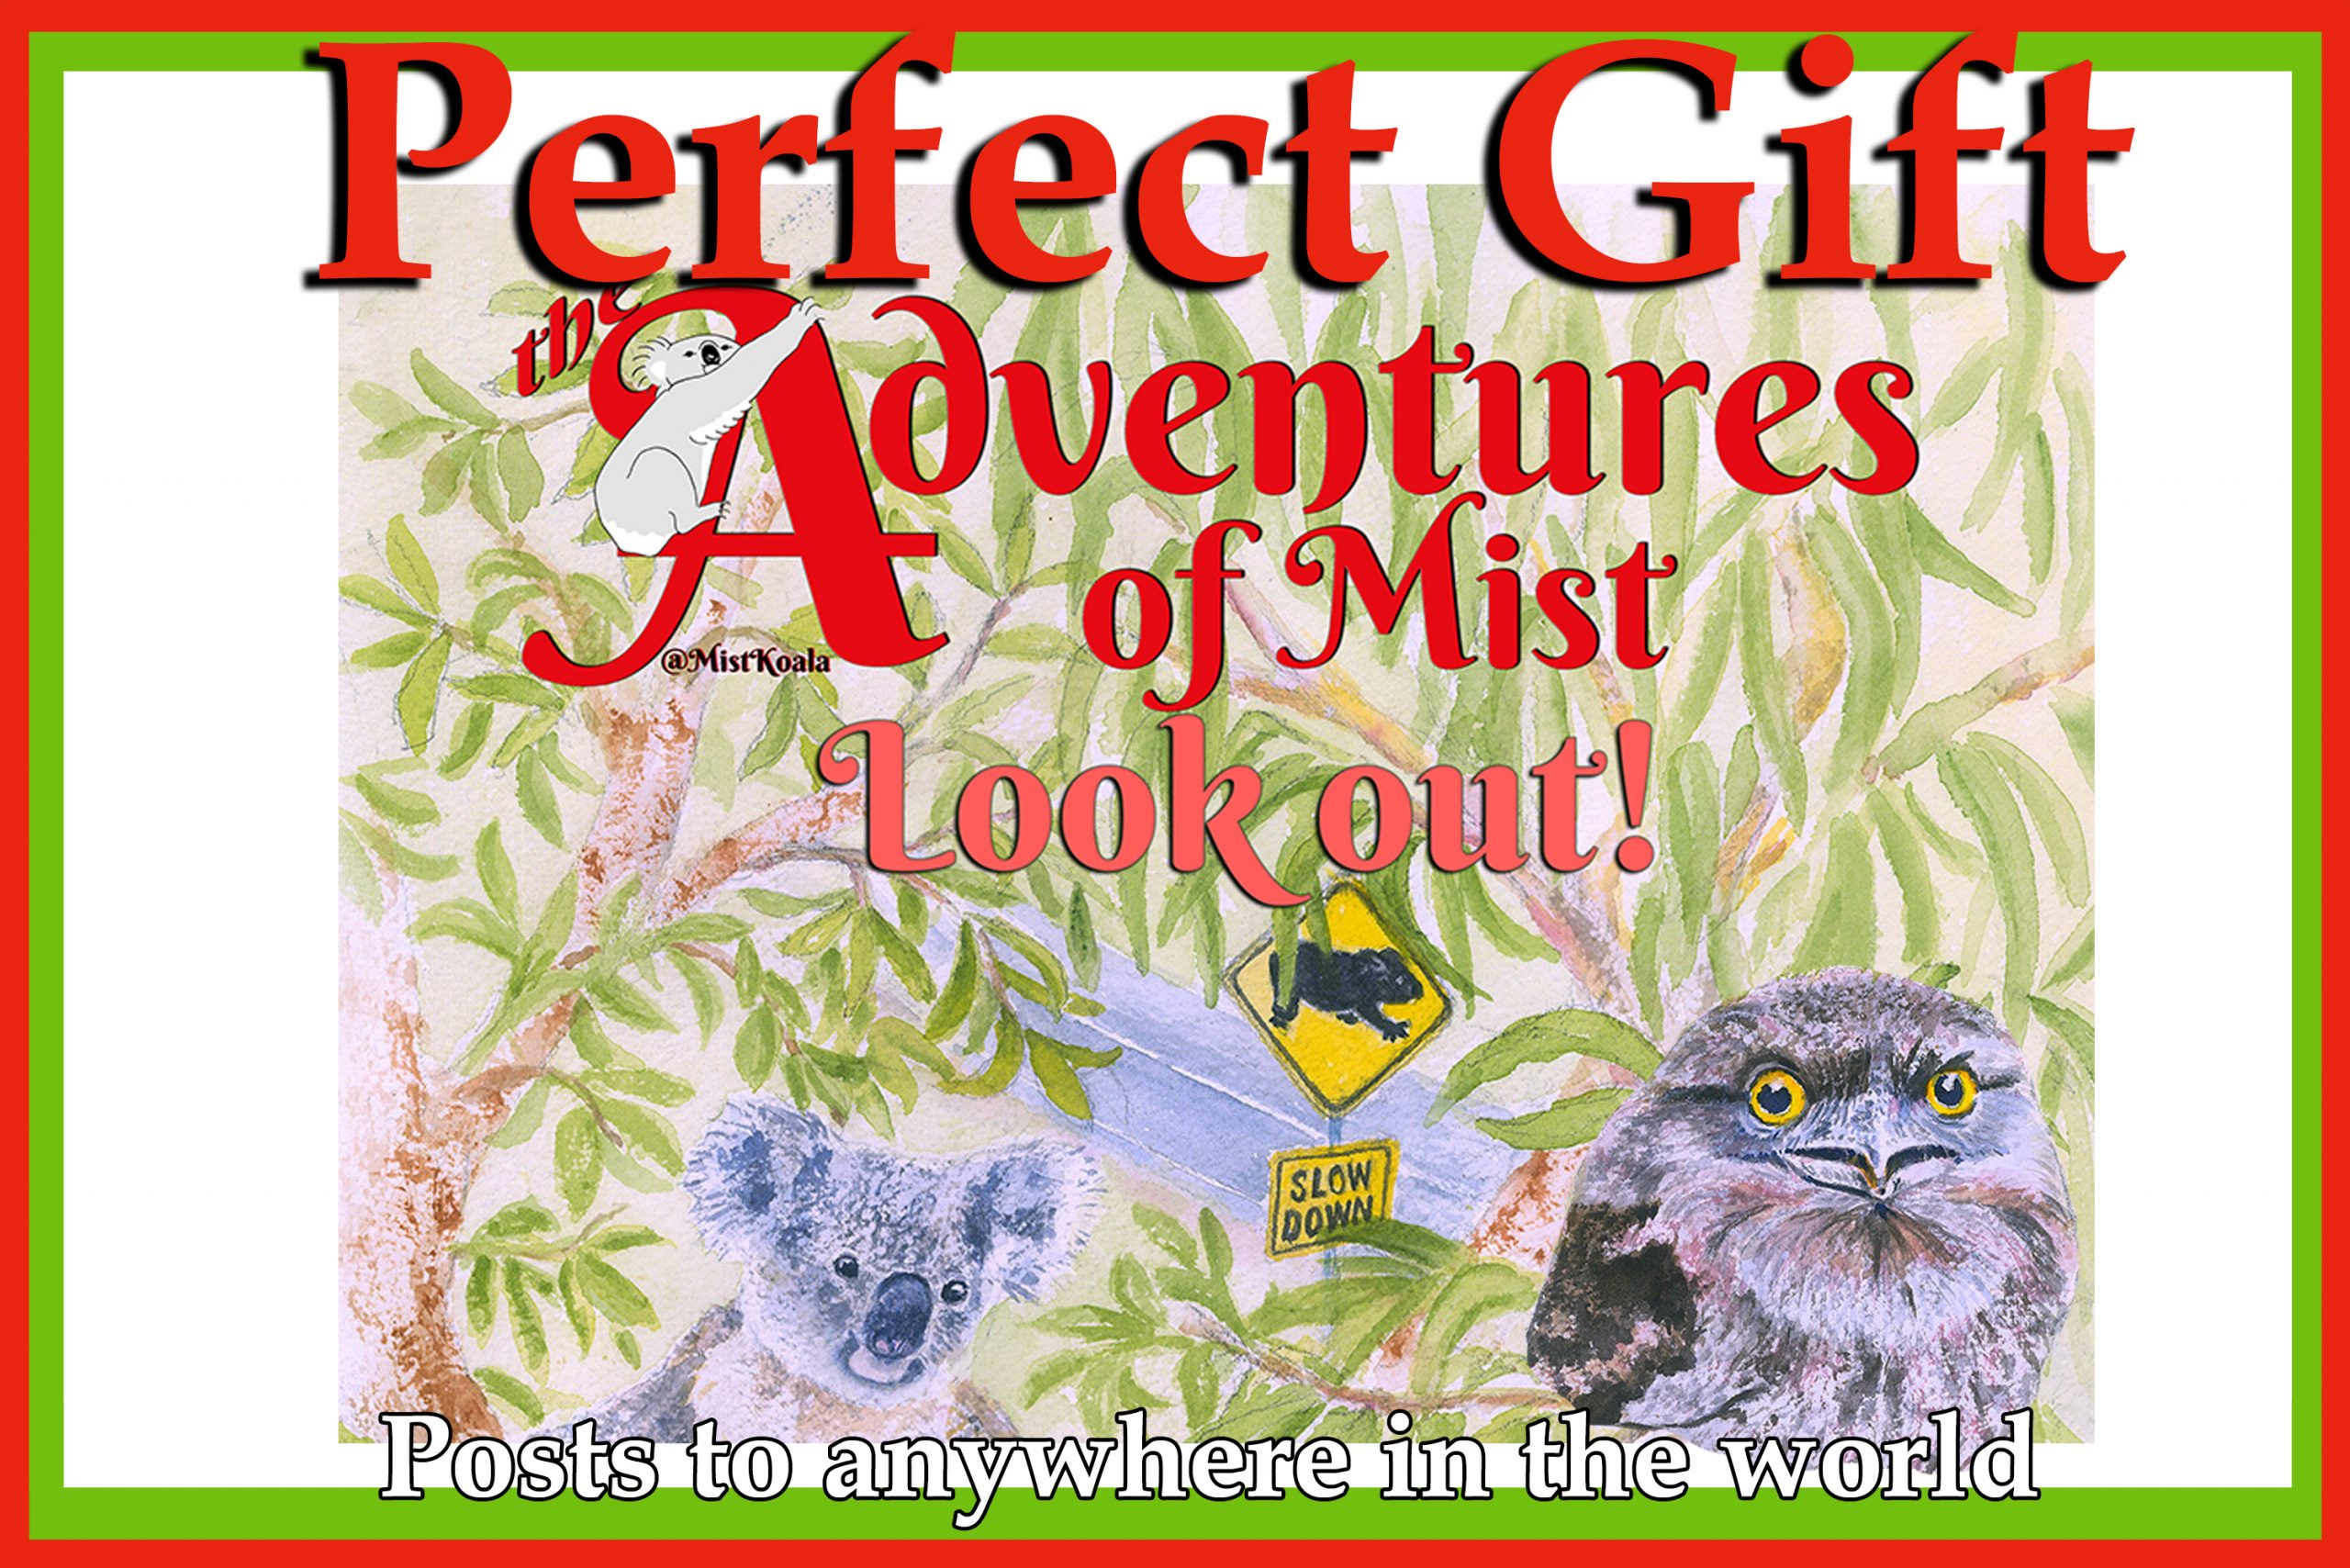 The adventures of Mist - Look out childrens book